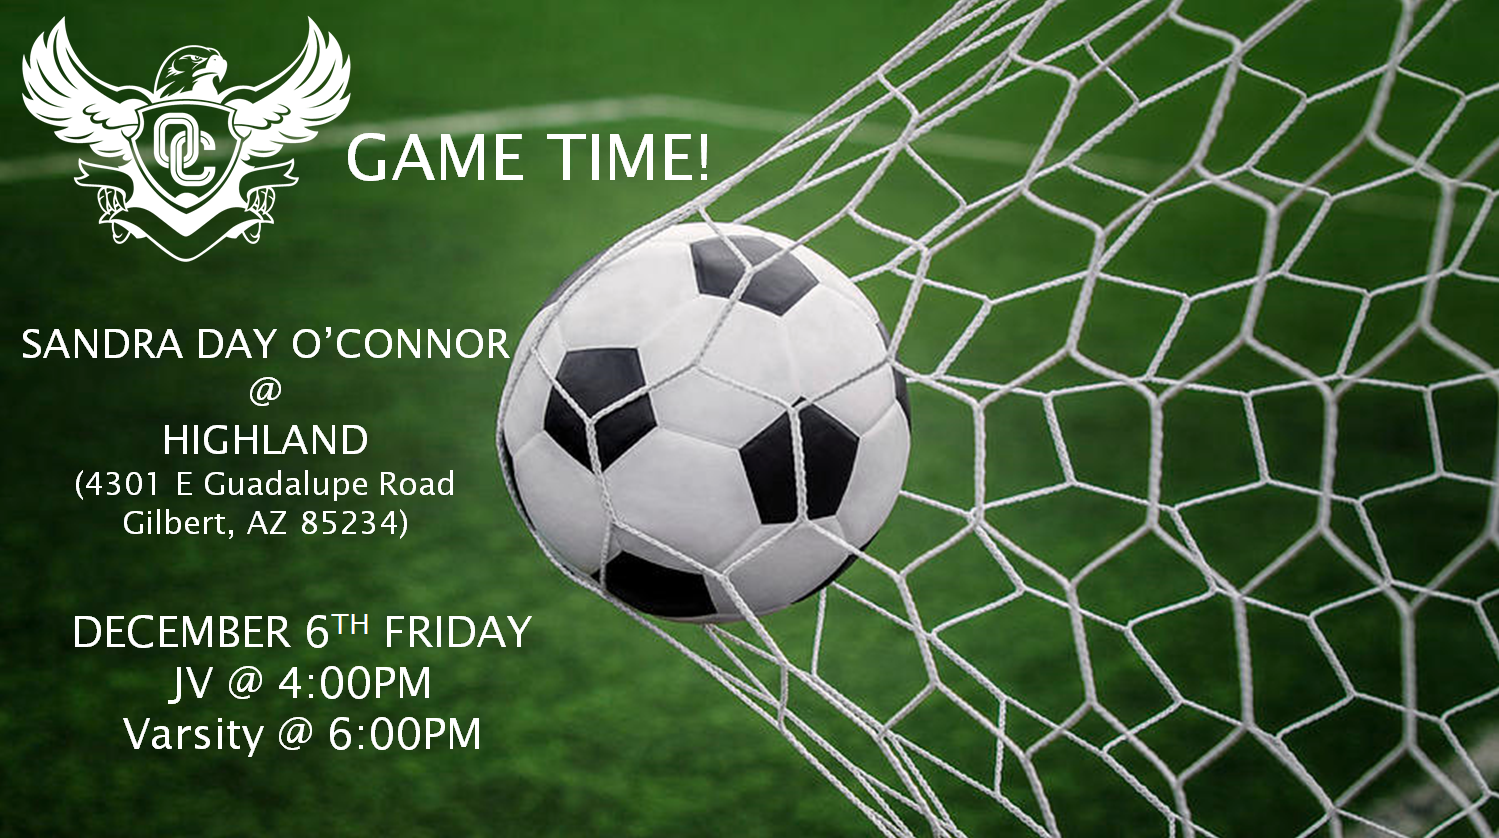 COME OUT AND SUPPORT YOUR O'CONNOR BOYS SOCCER TEAM!